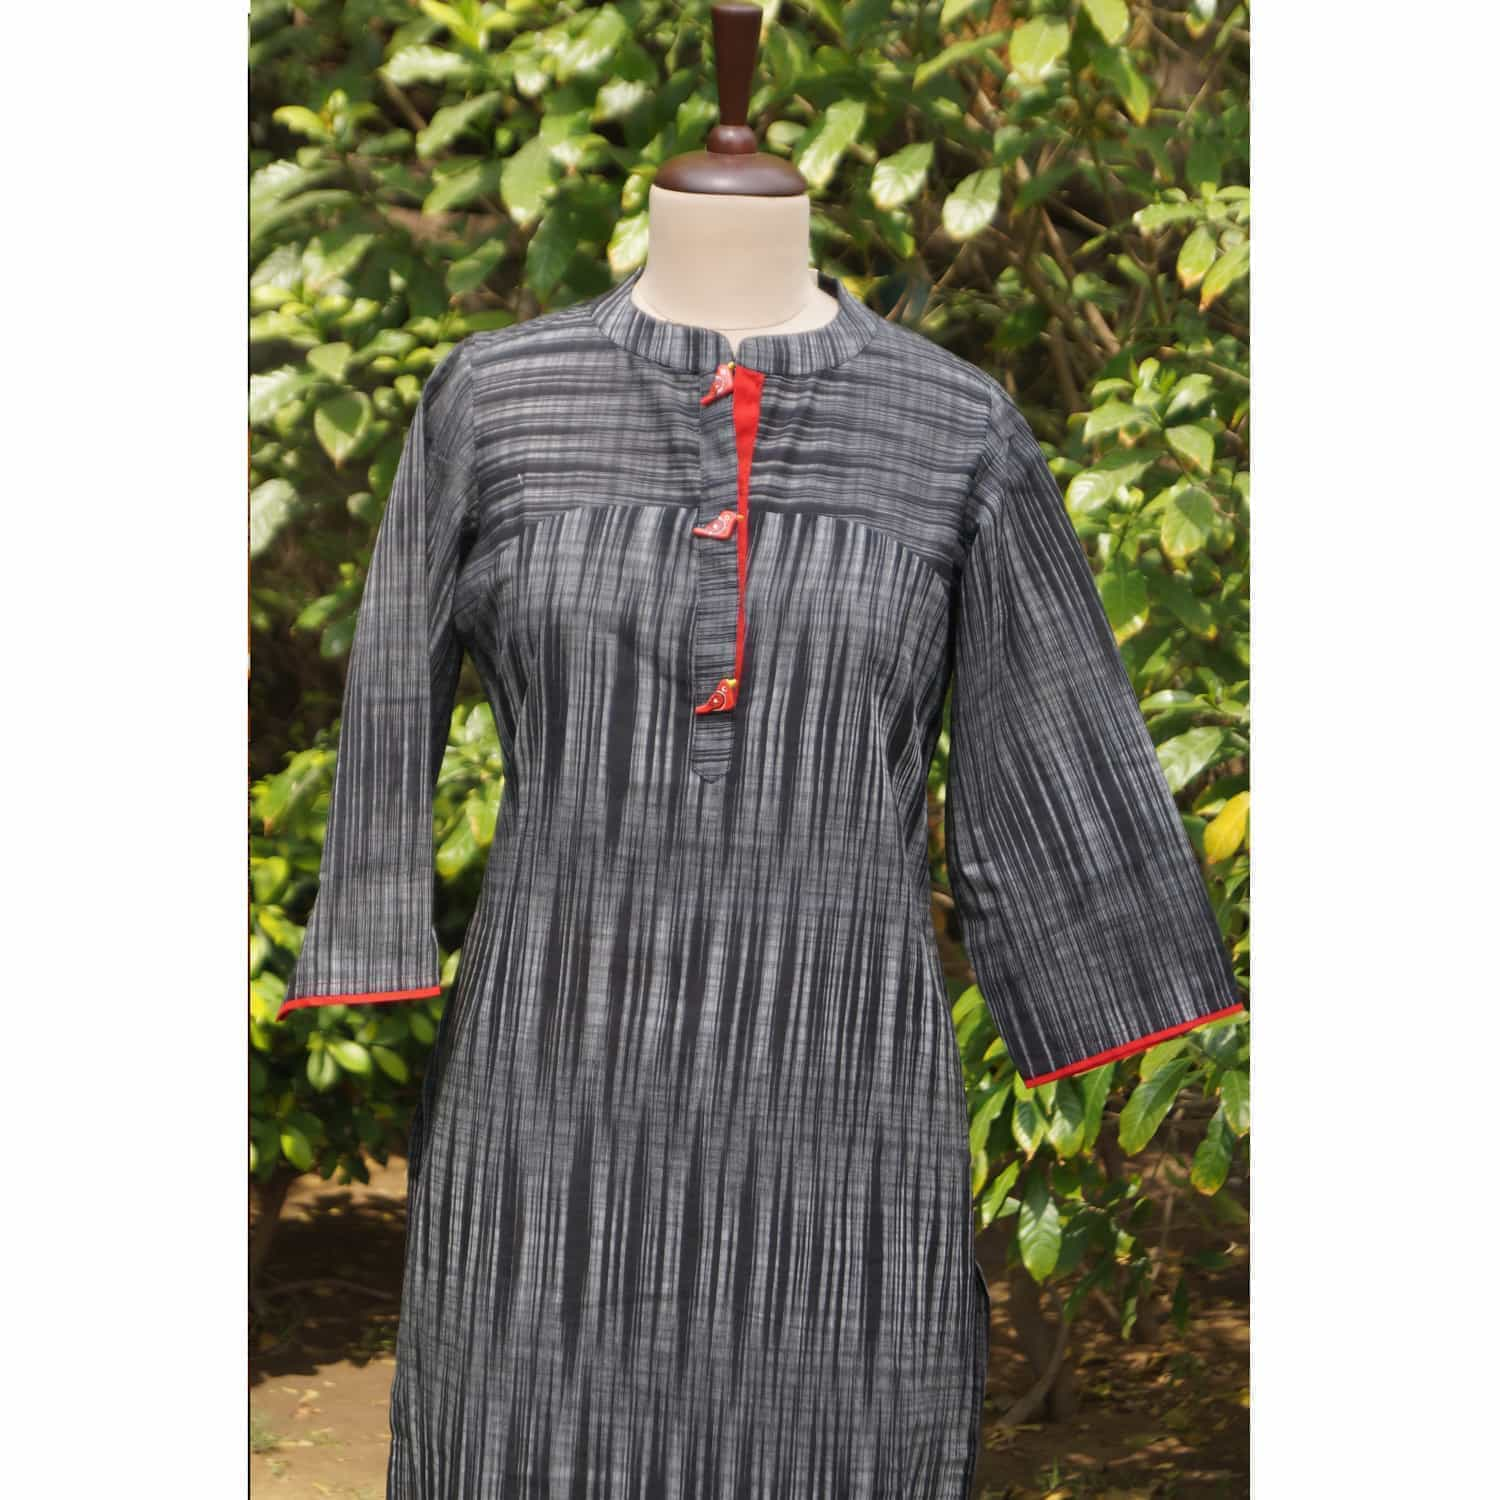 South cotton black kurta